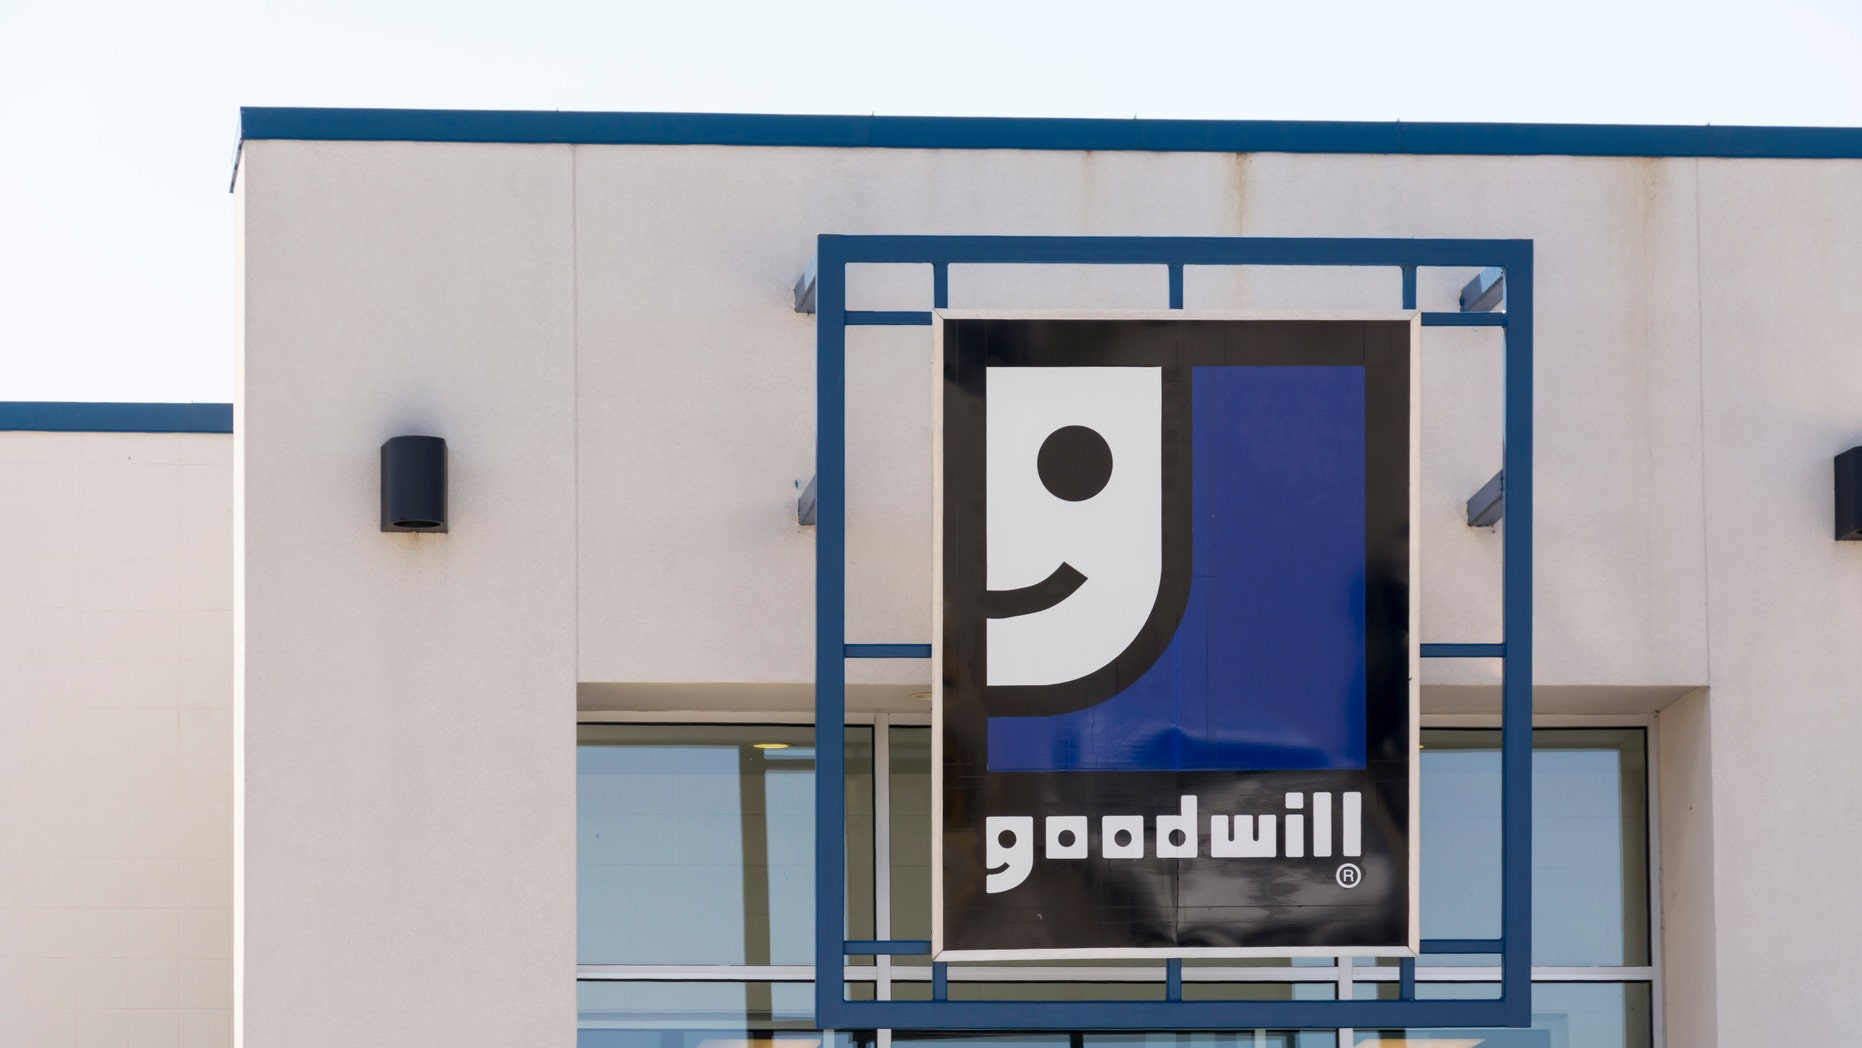 File photo - Goodwill store sign. (Photo by: Education Images/UIG via Getty Images)